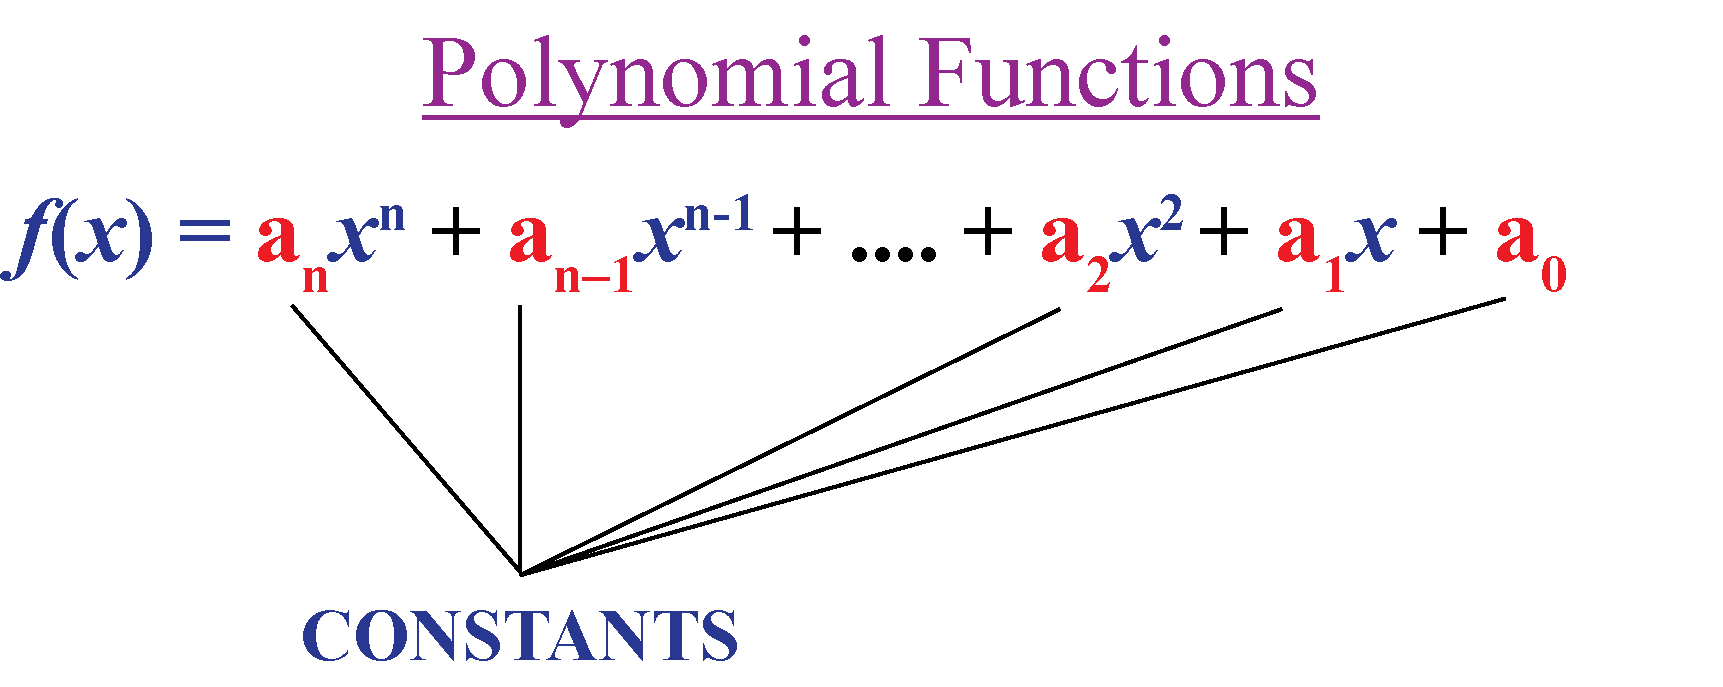 Standard form of polynomial function